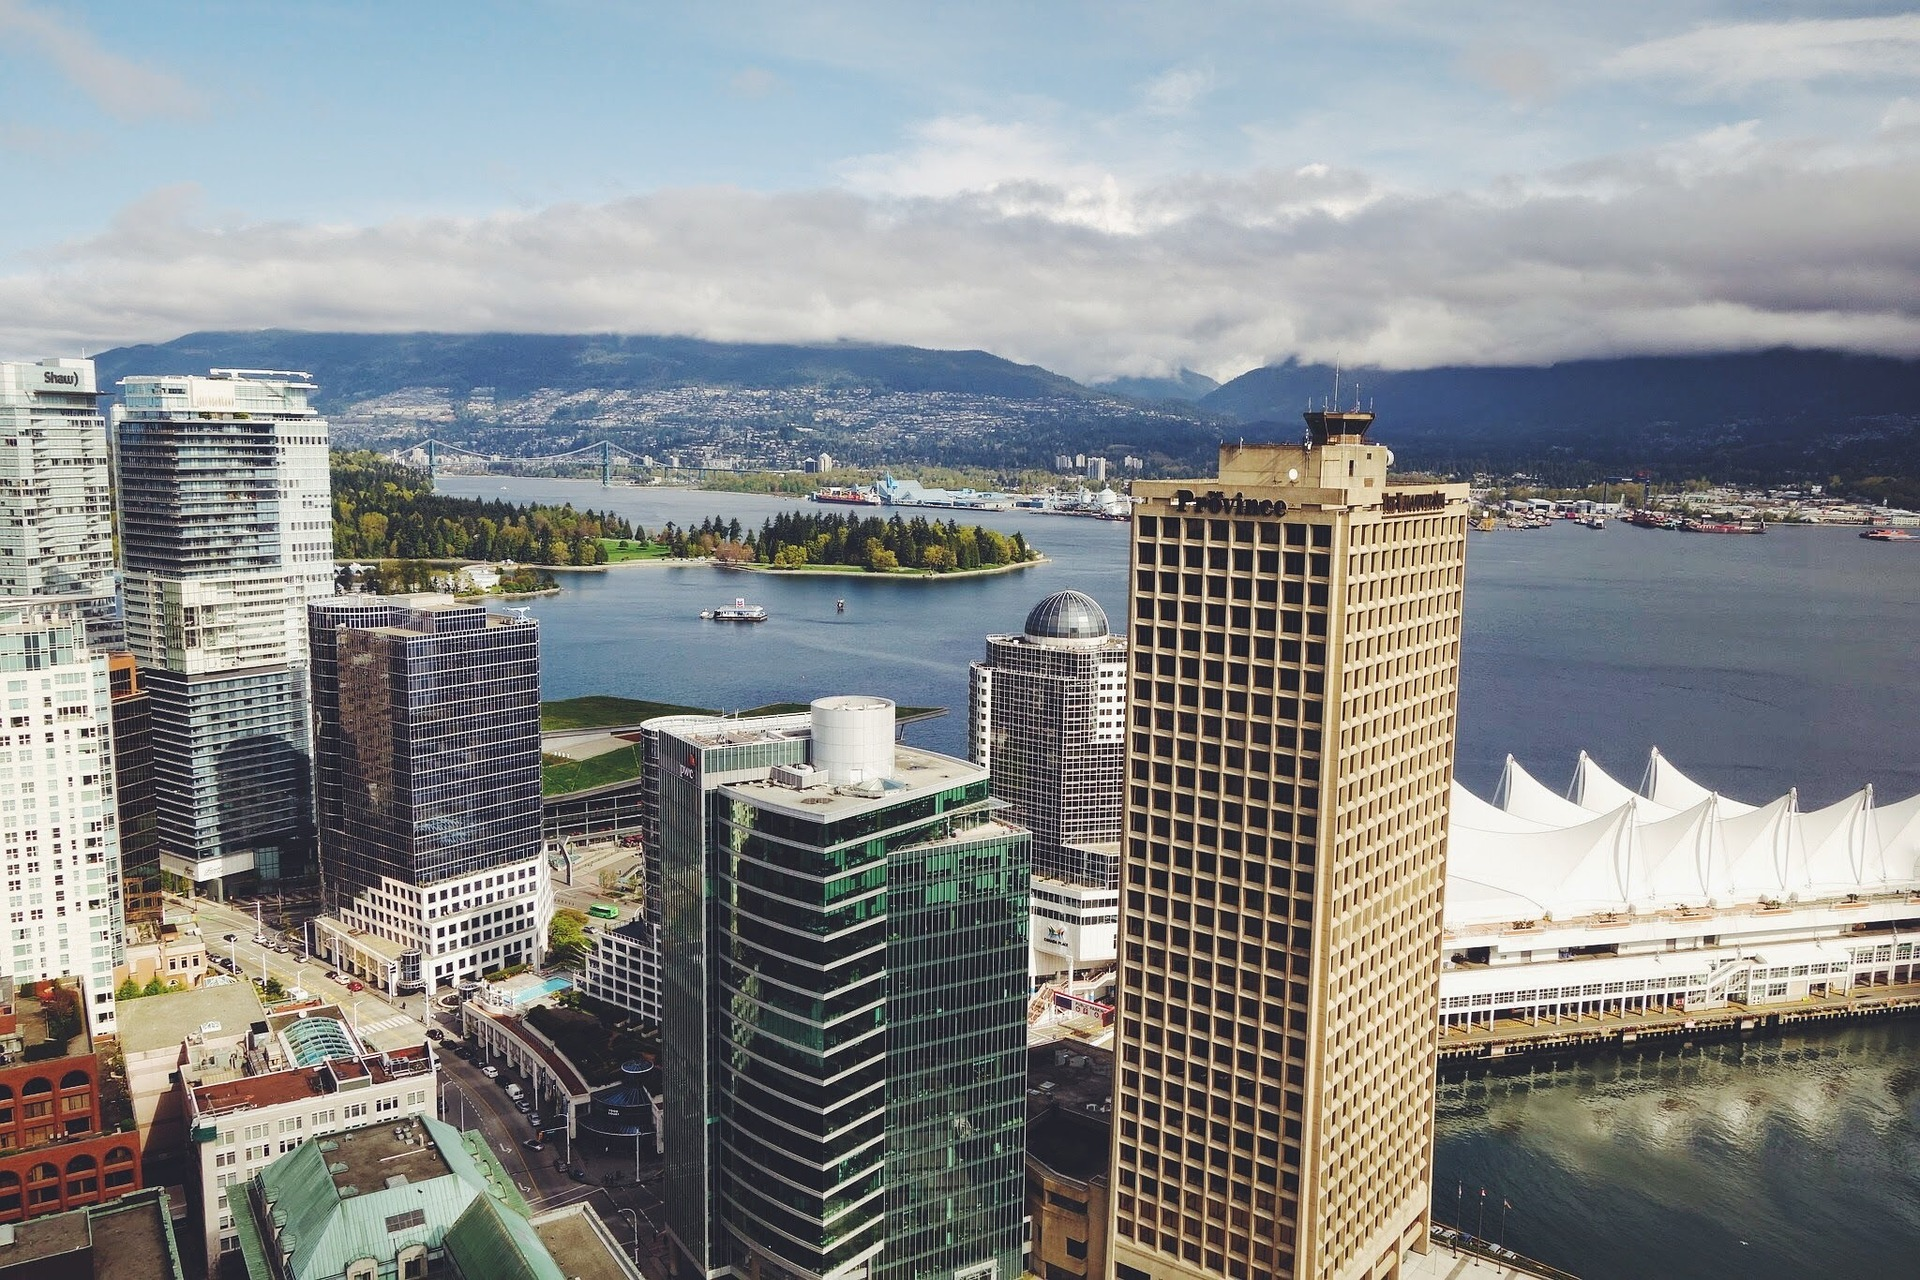 View of Coal Harbour, Canada Place, and the North Shore Mountains as seen from the Vancouver Lookout